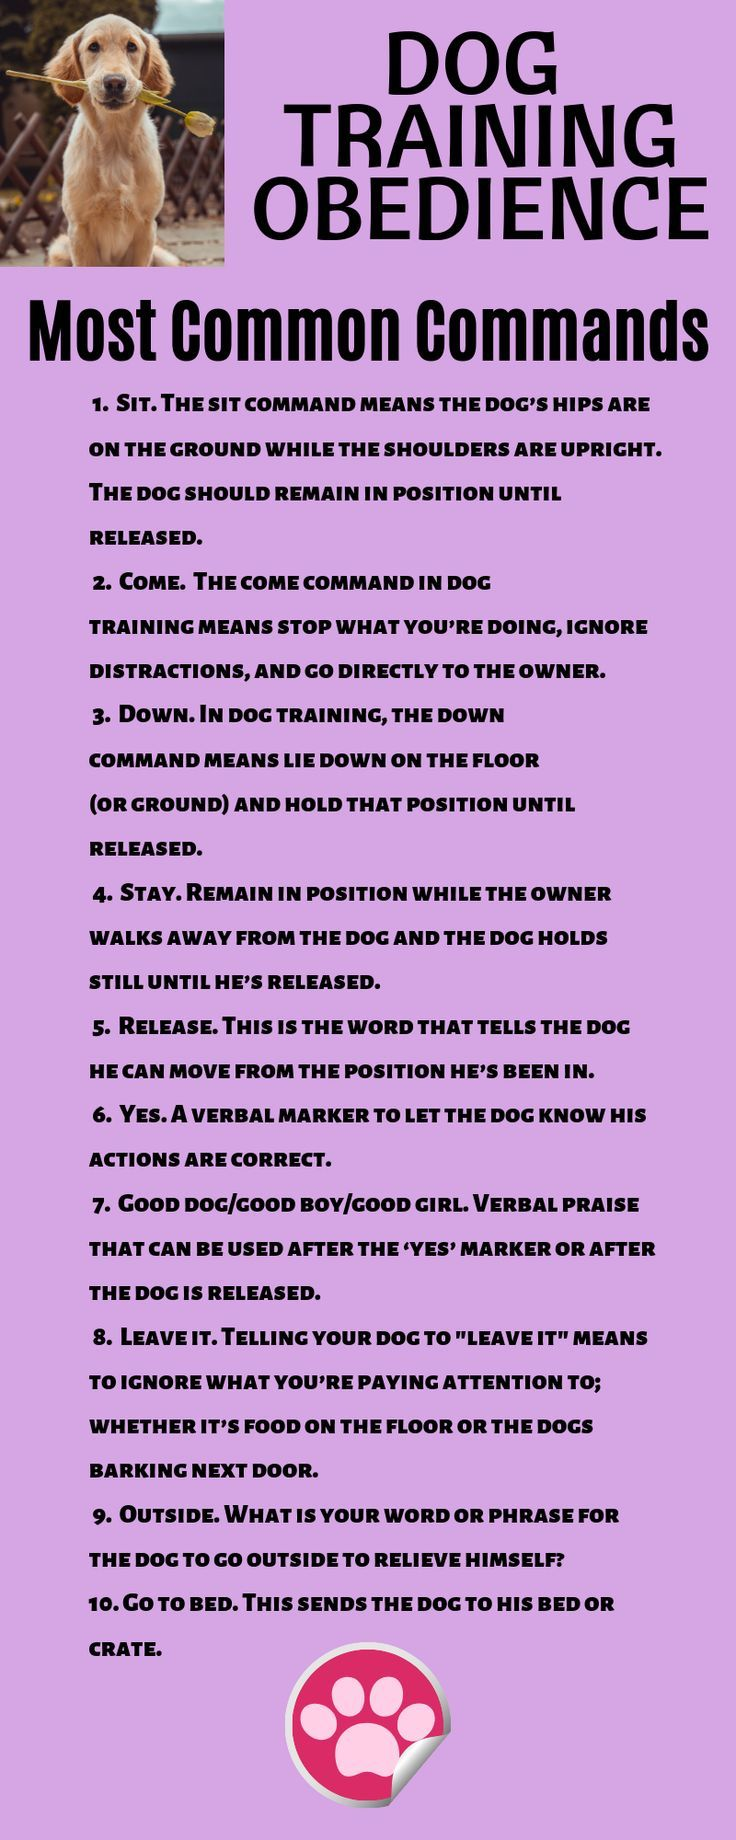 Dog Training Obedience Most Common Commands Make Sure Your Dog